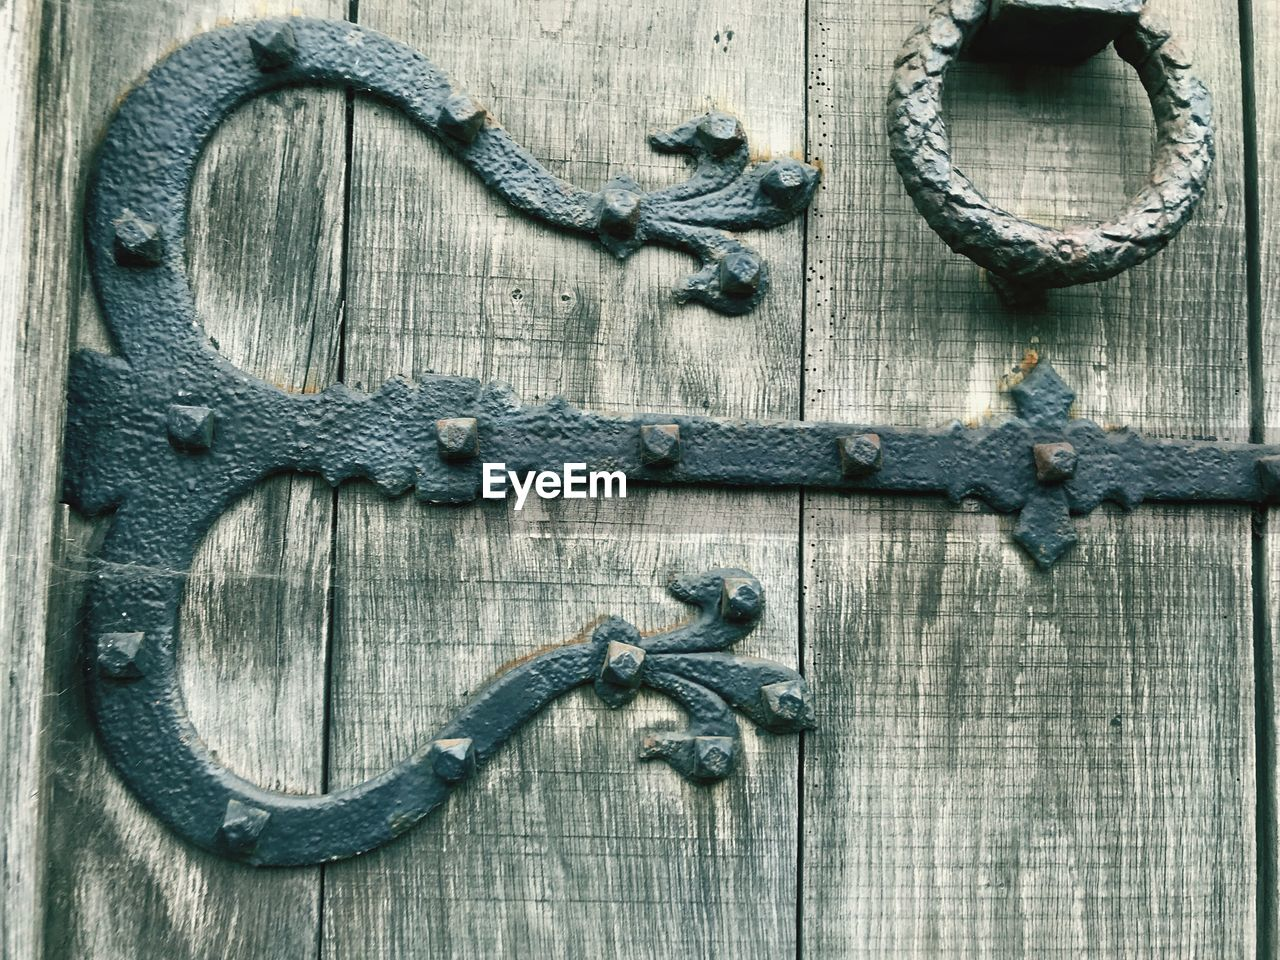 wood - material, metal, old, antique, close-up, textured, no people, indoors, door, door knocker, backgrounds, protection, security, entrance, wood, table, rusty, day, black color, wood grain, ornate